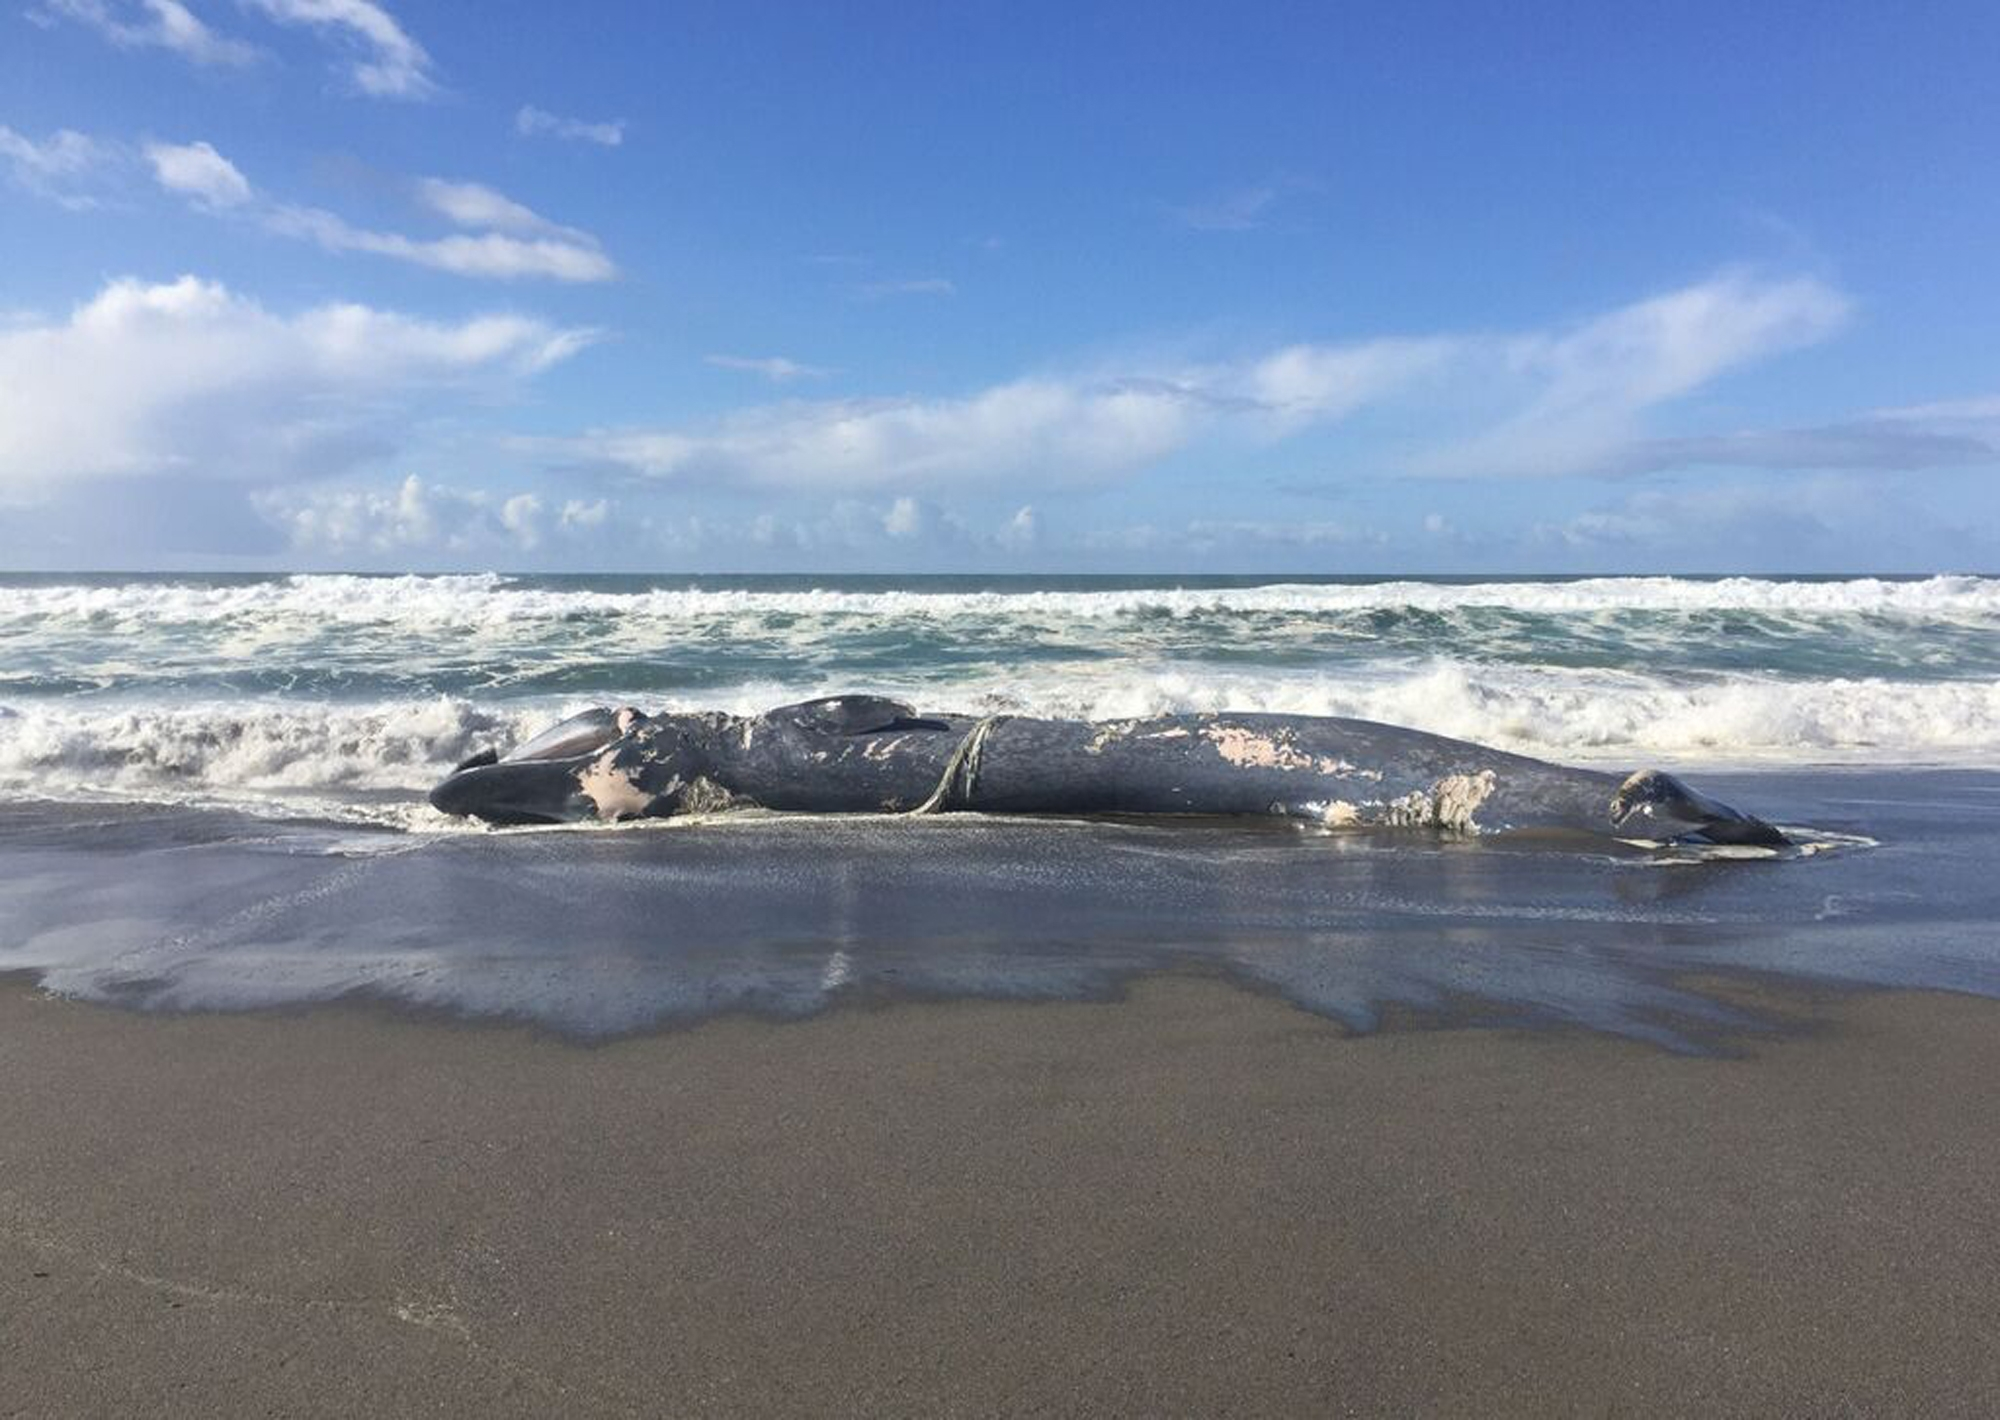 This undated photo provided by the Oregon Parks and Recreation Department, shows the carcass of a blue whale that washed up on the beach recently near Gold Beach, Ore.  Authorities estimate that the 78-foot long dead blue whale was dead for about two weeks before it washed up onto the sandy beach. (Oregon State Parks via AP)<p></p>